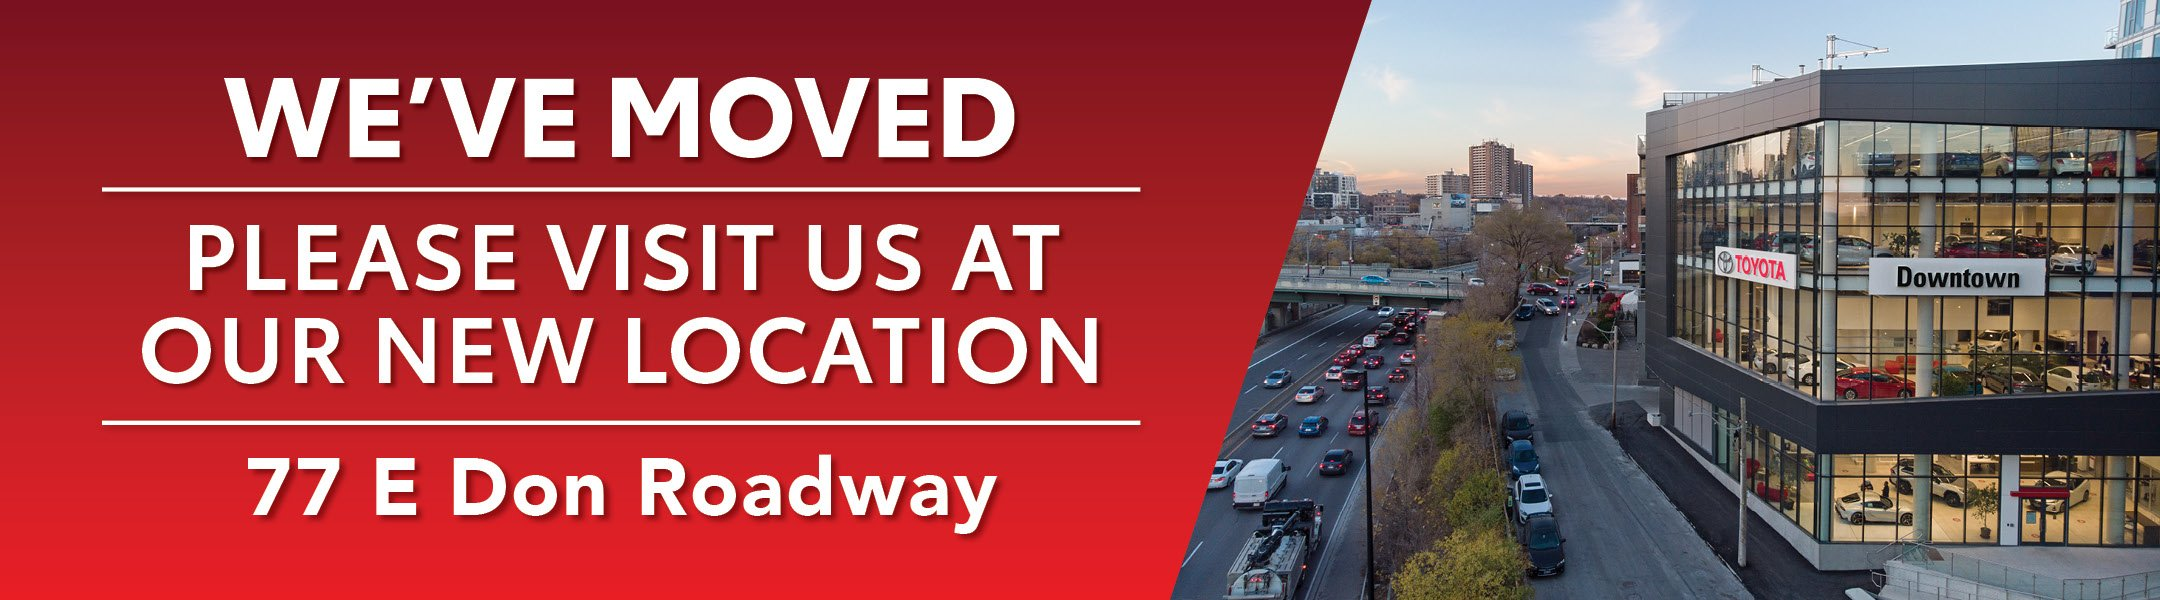 We've Moved. Please visit us at our new location: 77 E Don Roadway. Image of New Downtown Toyota Dealership